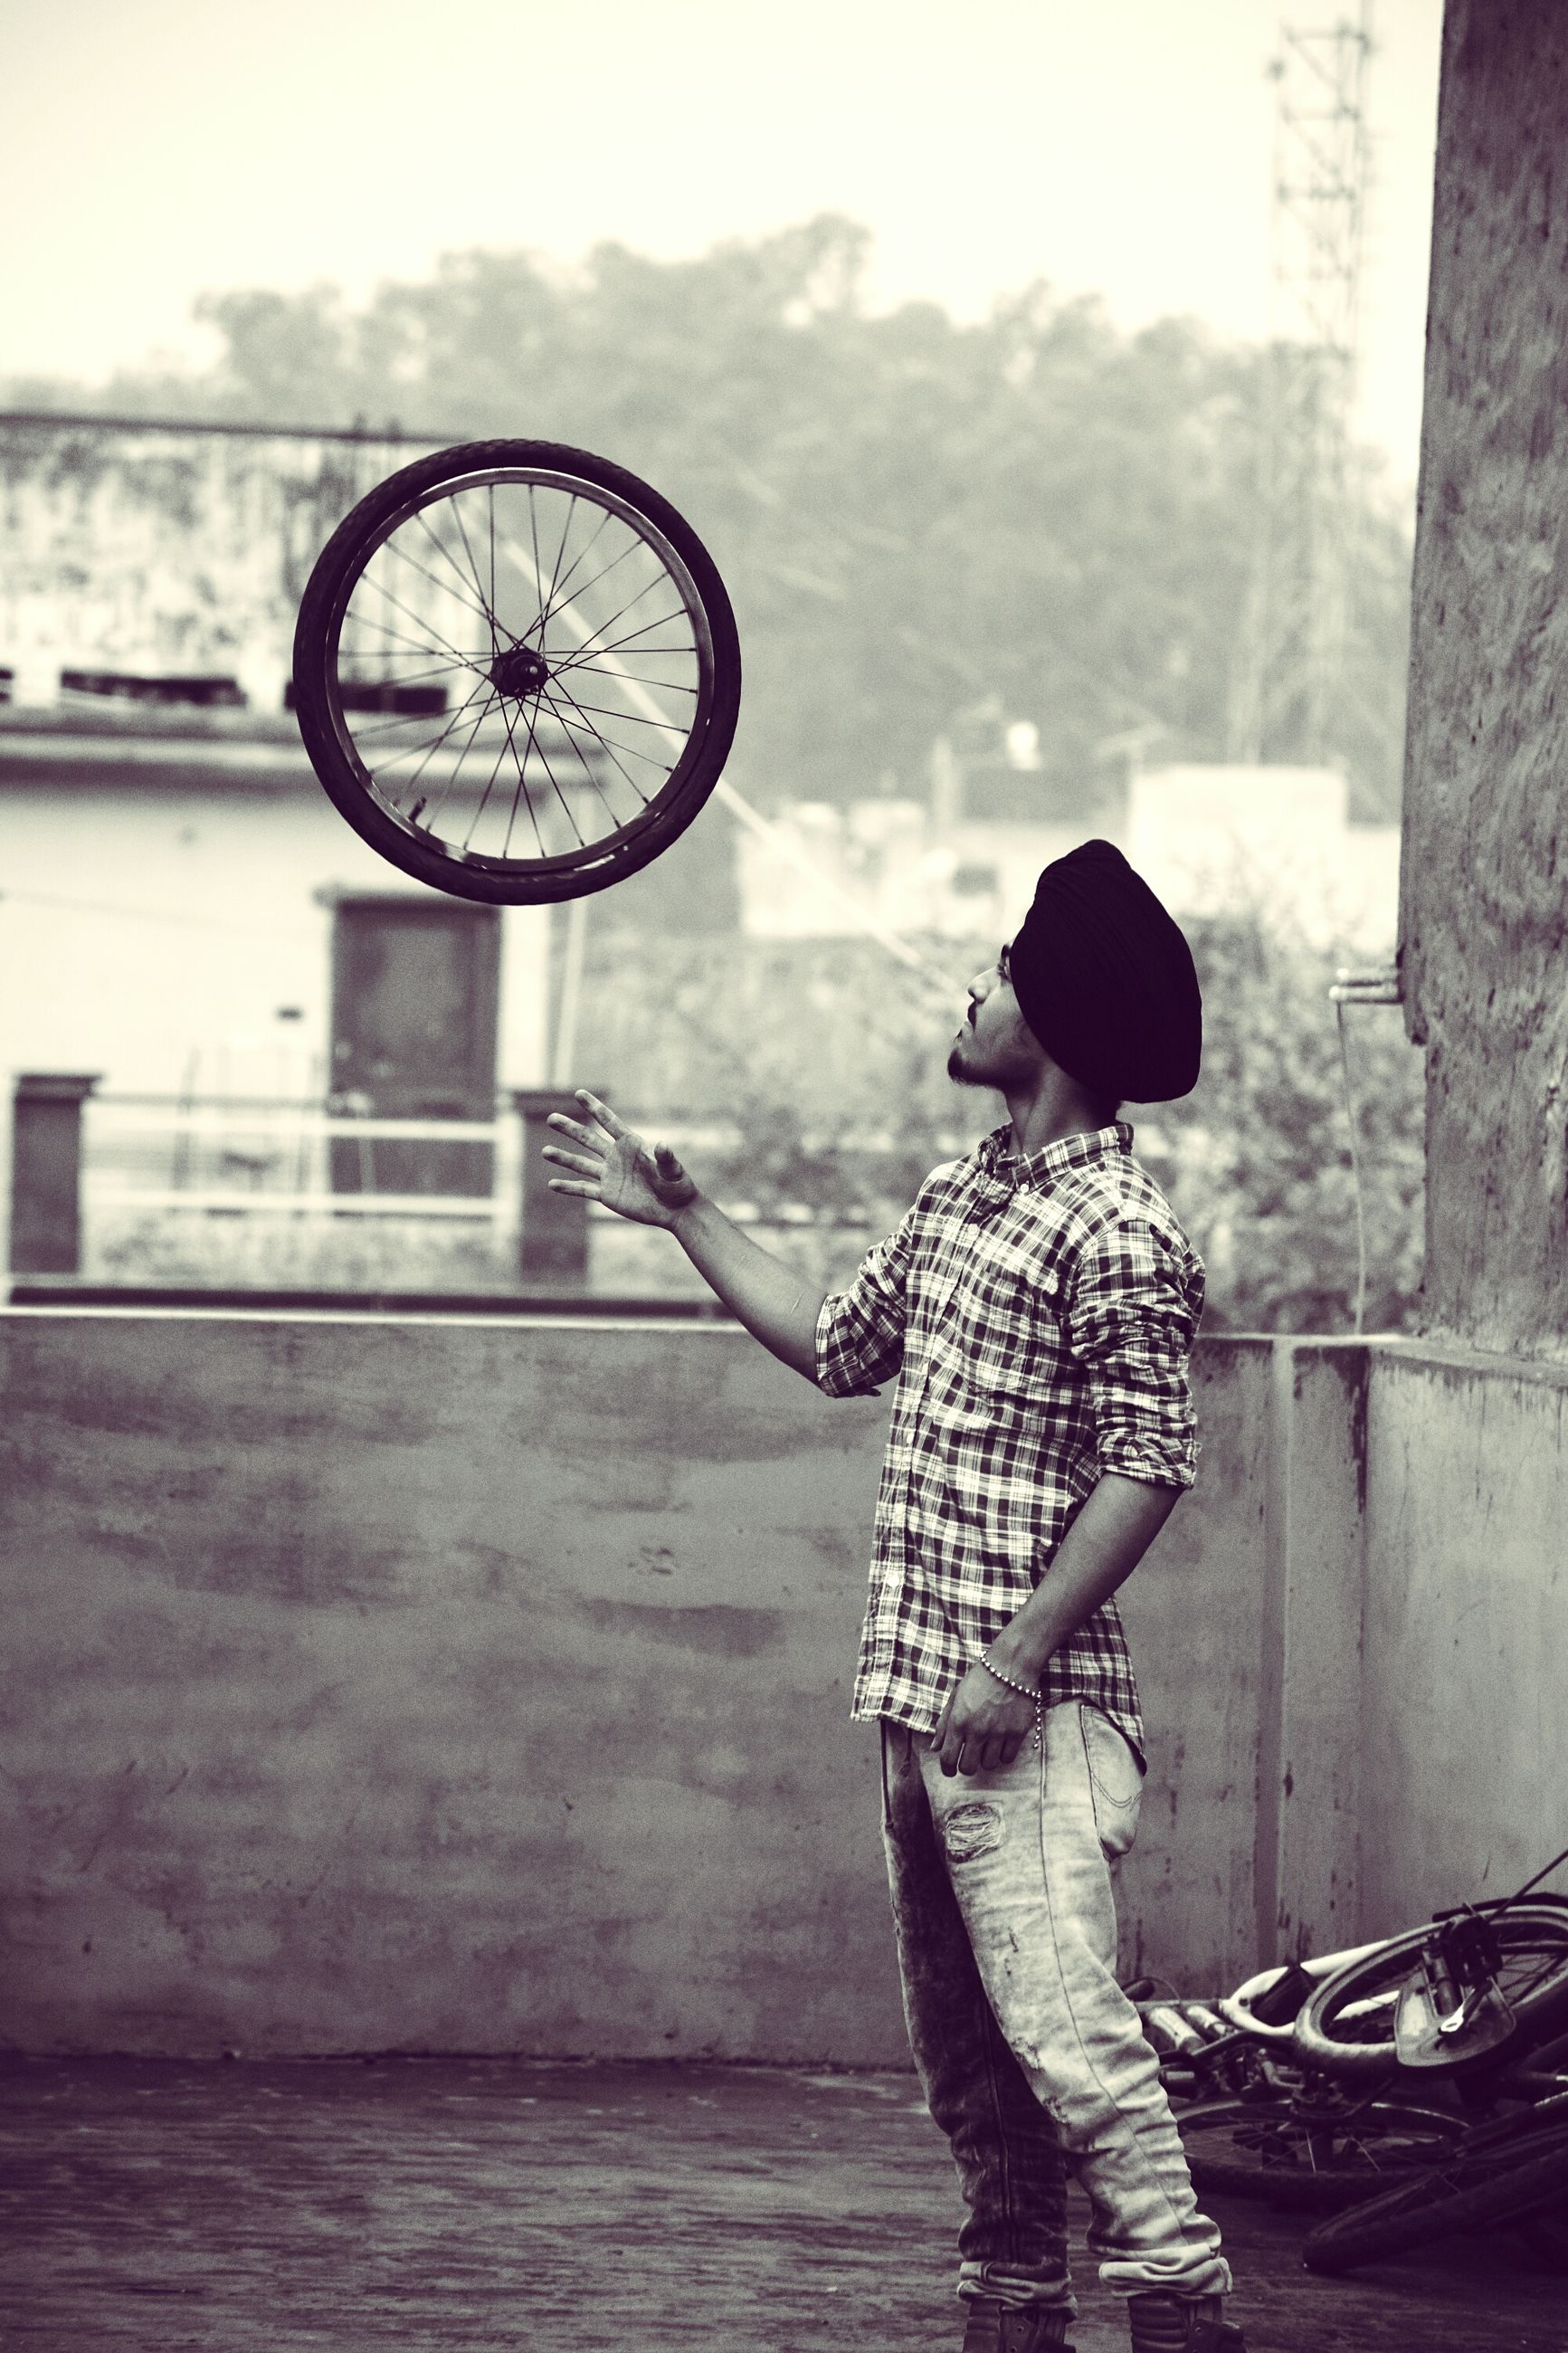 bicycle, transportation, mode of transport, street, land vehicle, leisure activity, full length, lifestyles, side view, men, outdoors, day, water, holding, cycling, built structure, riding, road